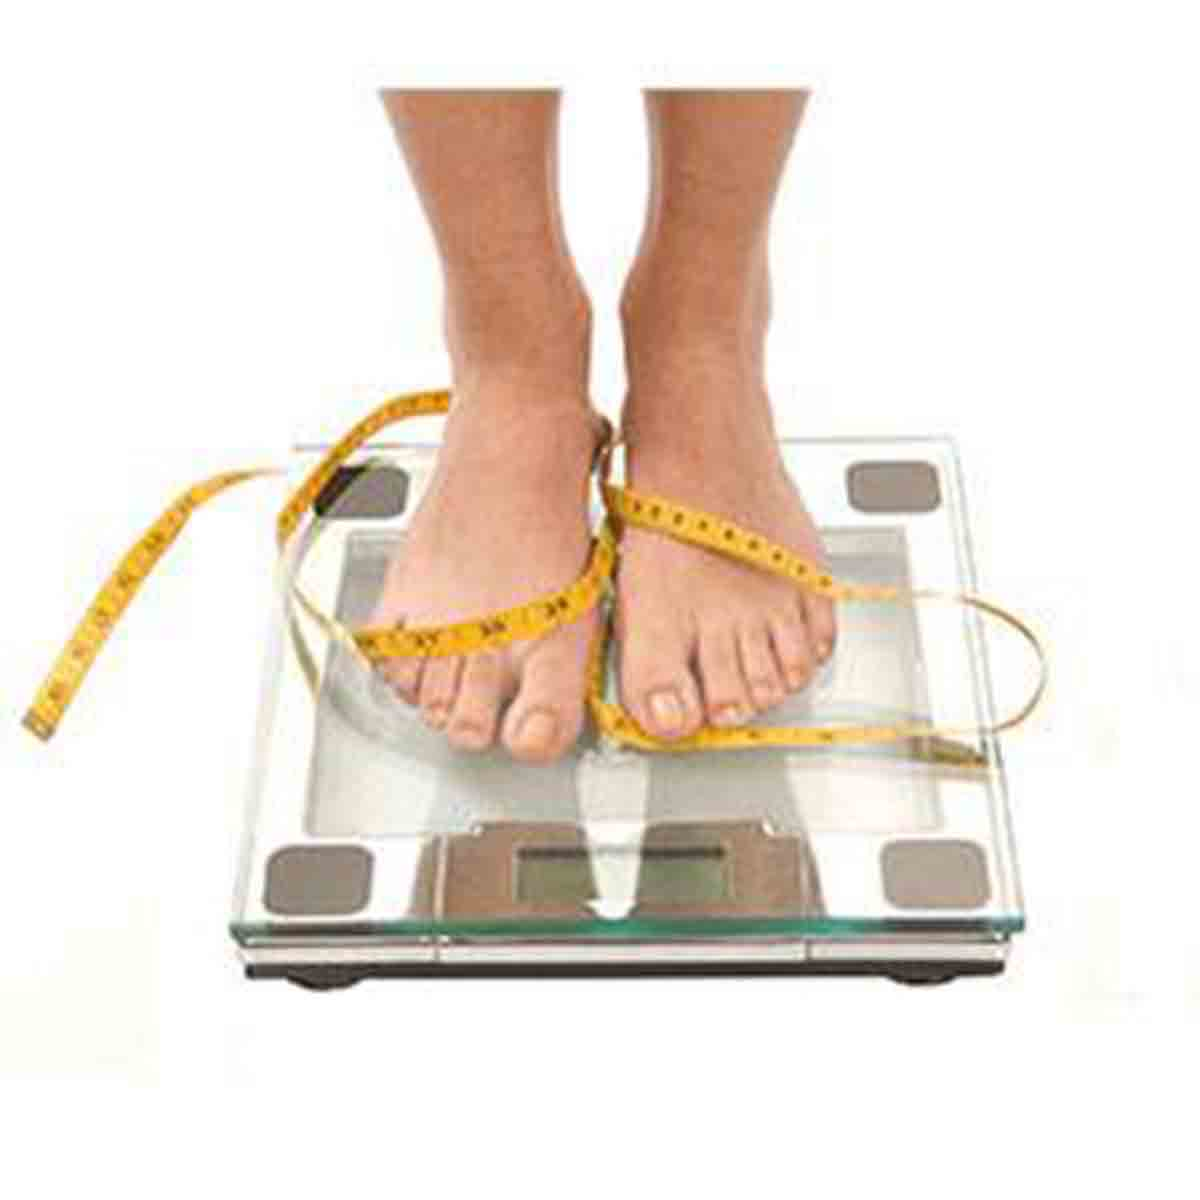 Another Top 5 Weight Loss Pill Myths, woman scales